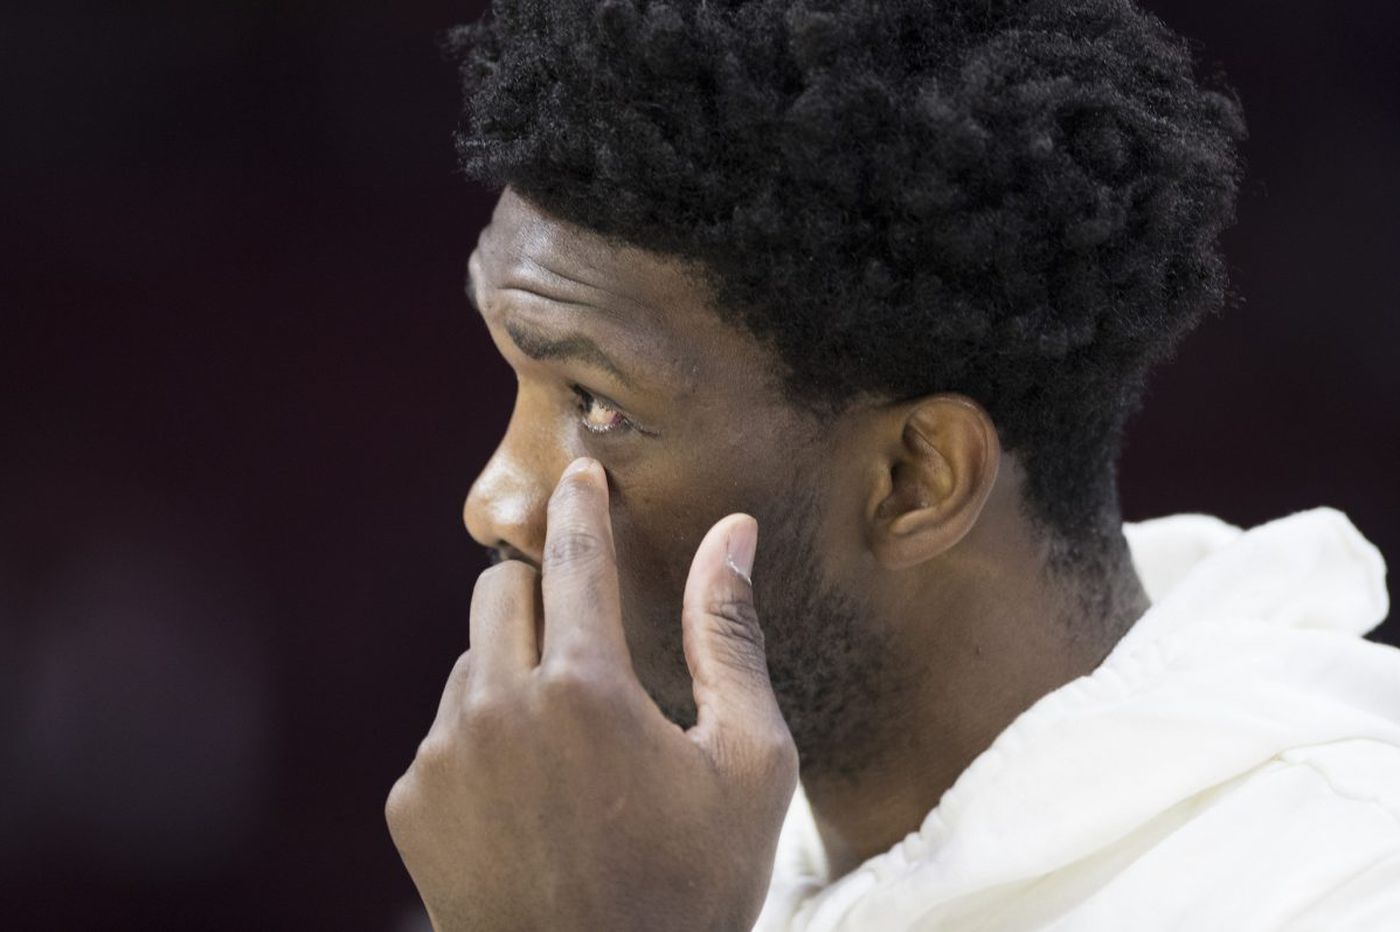 Sixers' Joel Embiid attends game against Cavs, doctors happy with orbital bone recovery